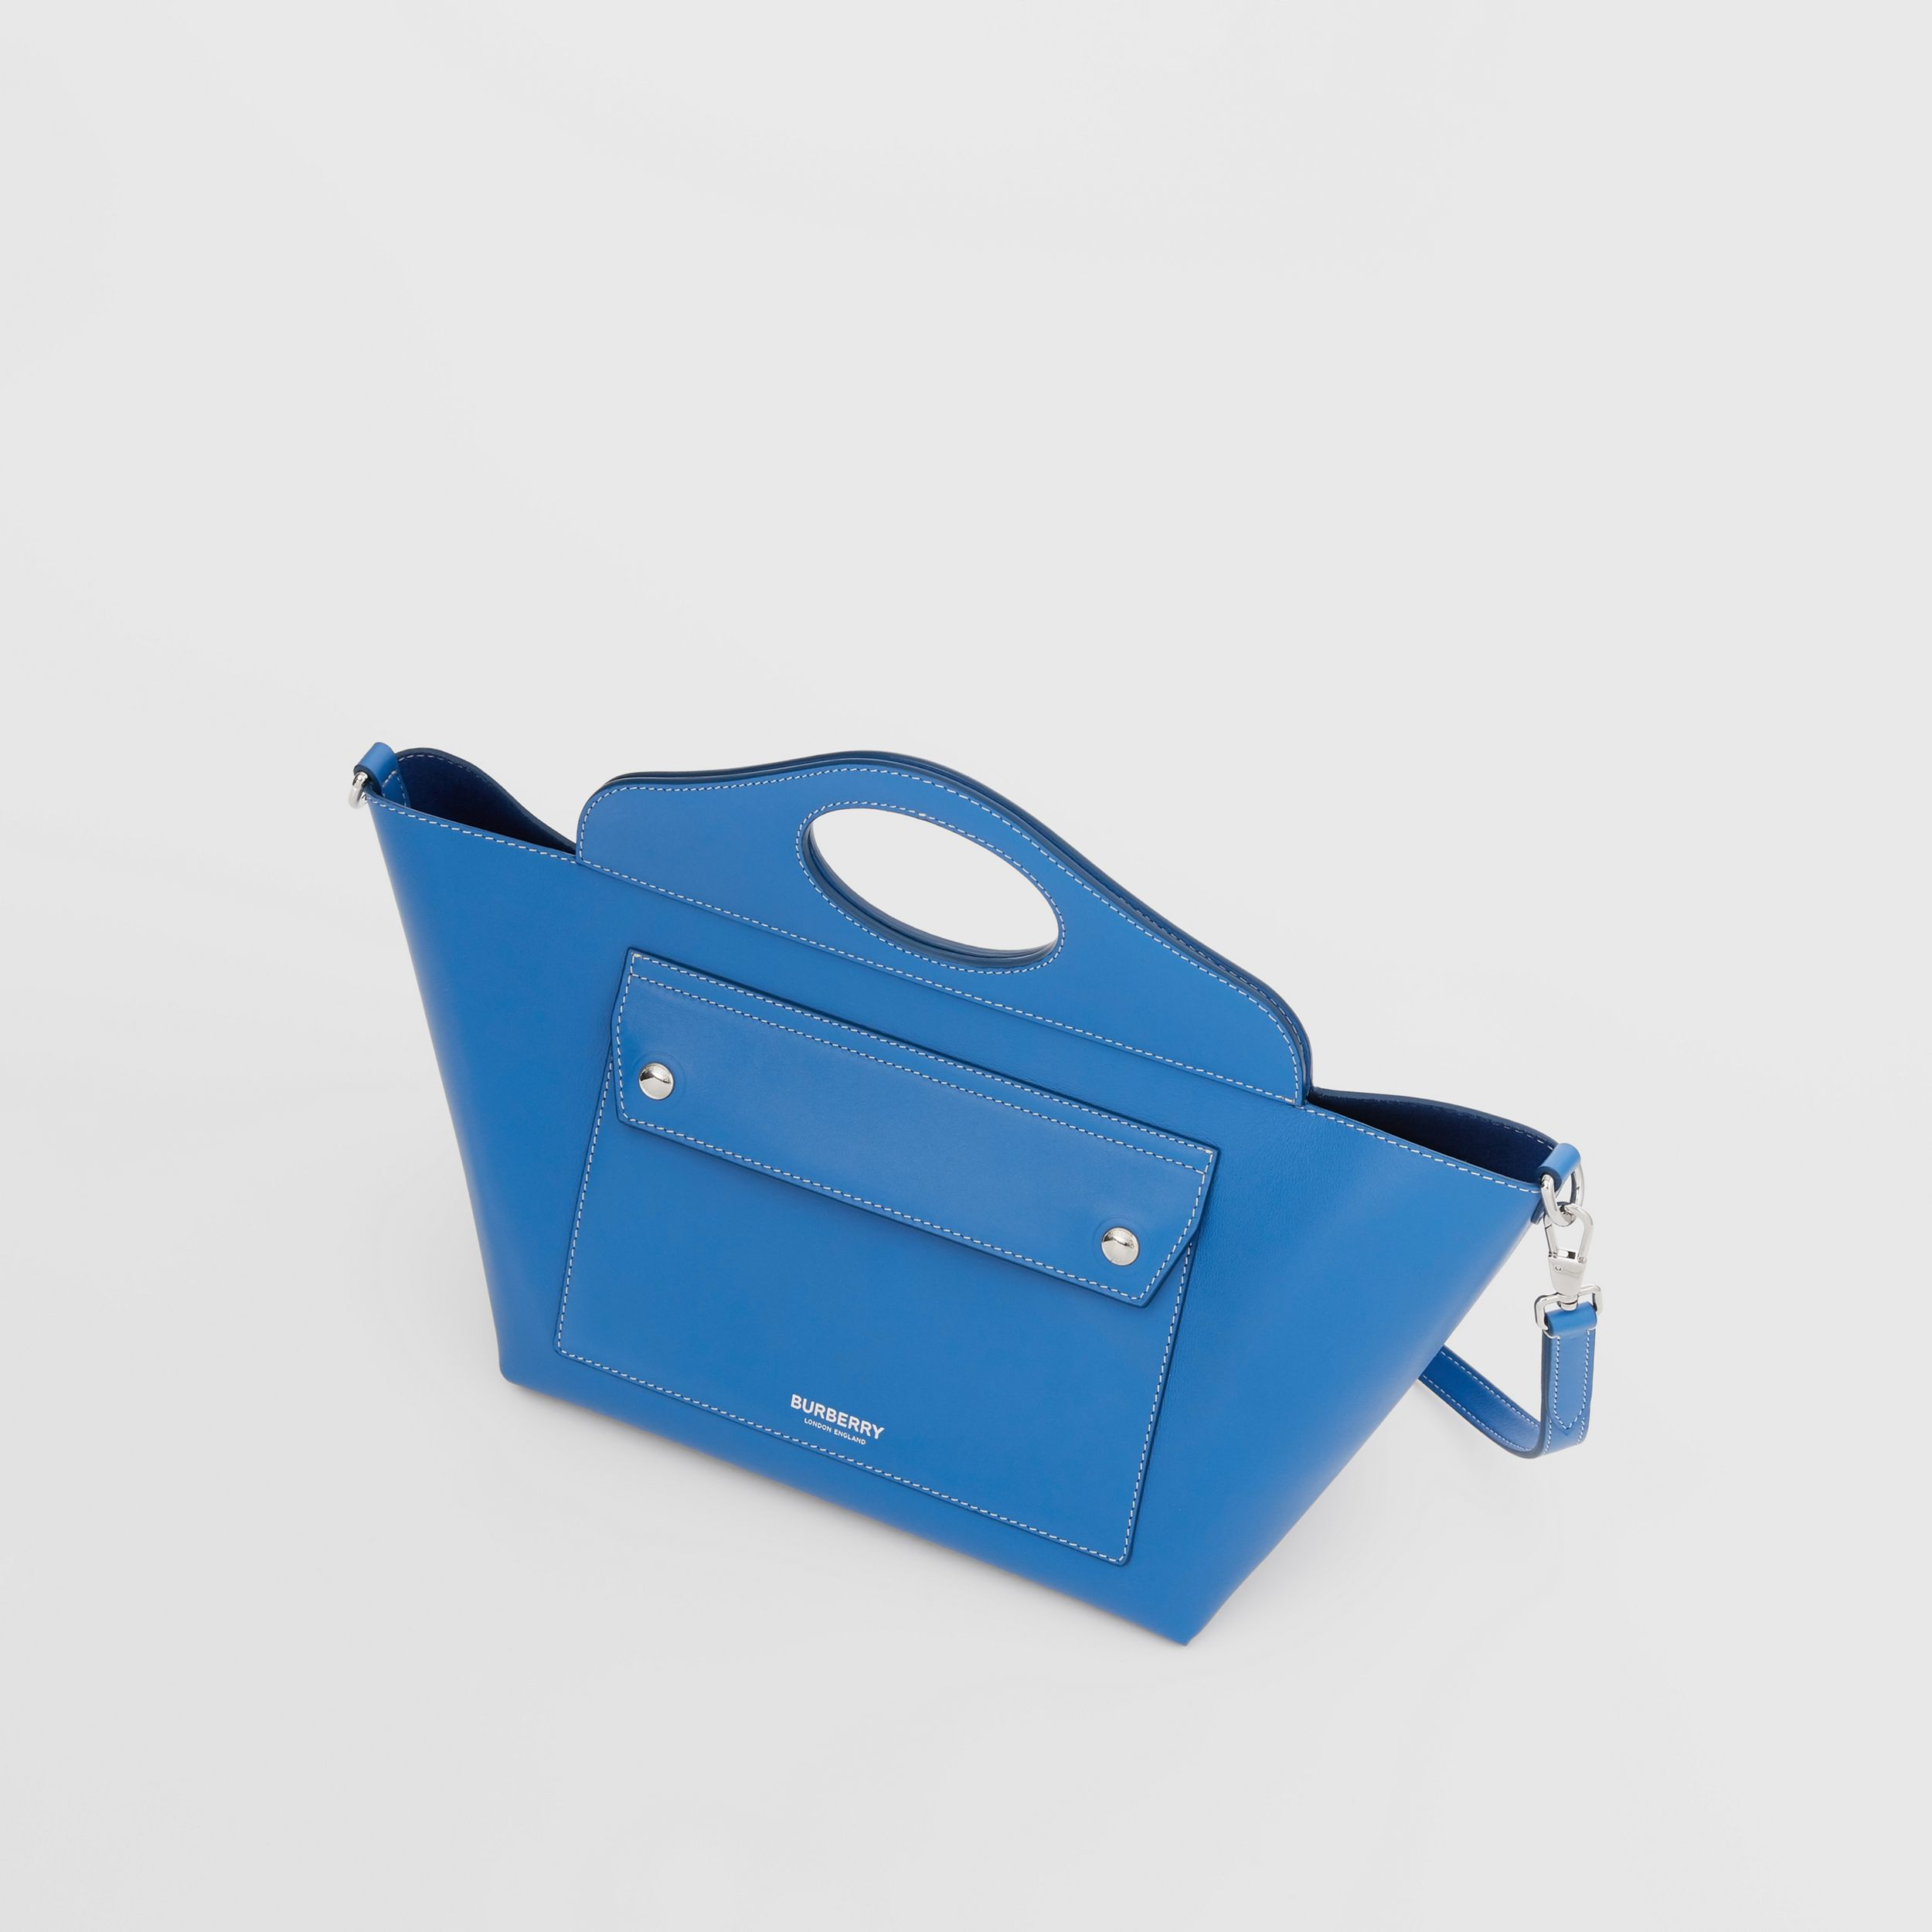 Mini Leather Soft Pocket Tote in Warm Royal Blue - Women | Burberry - 4